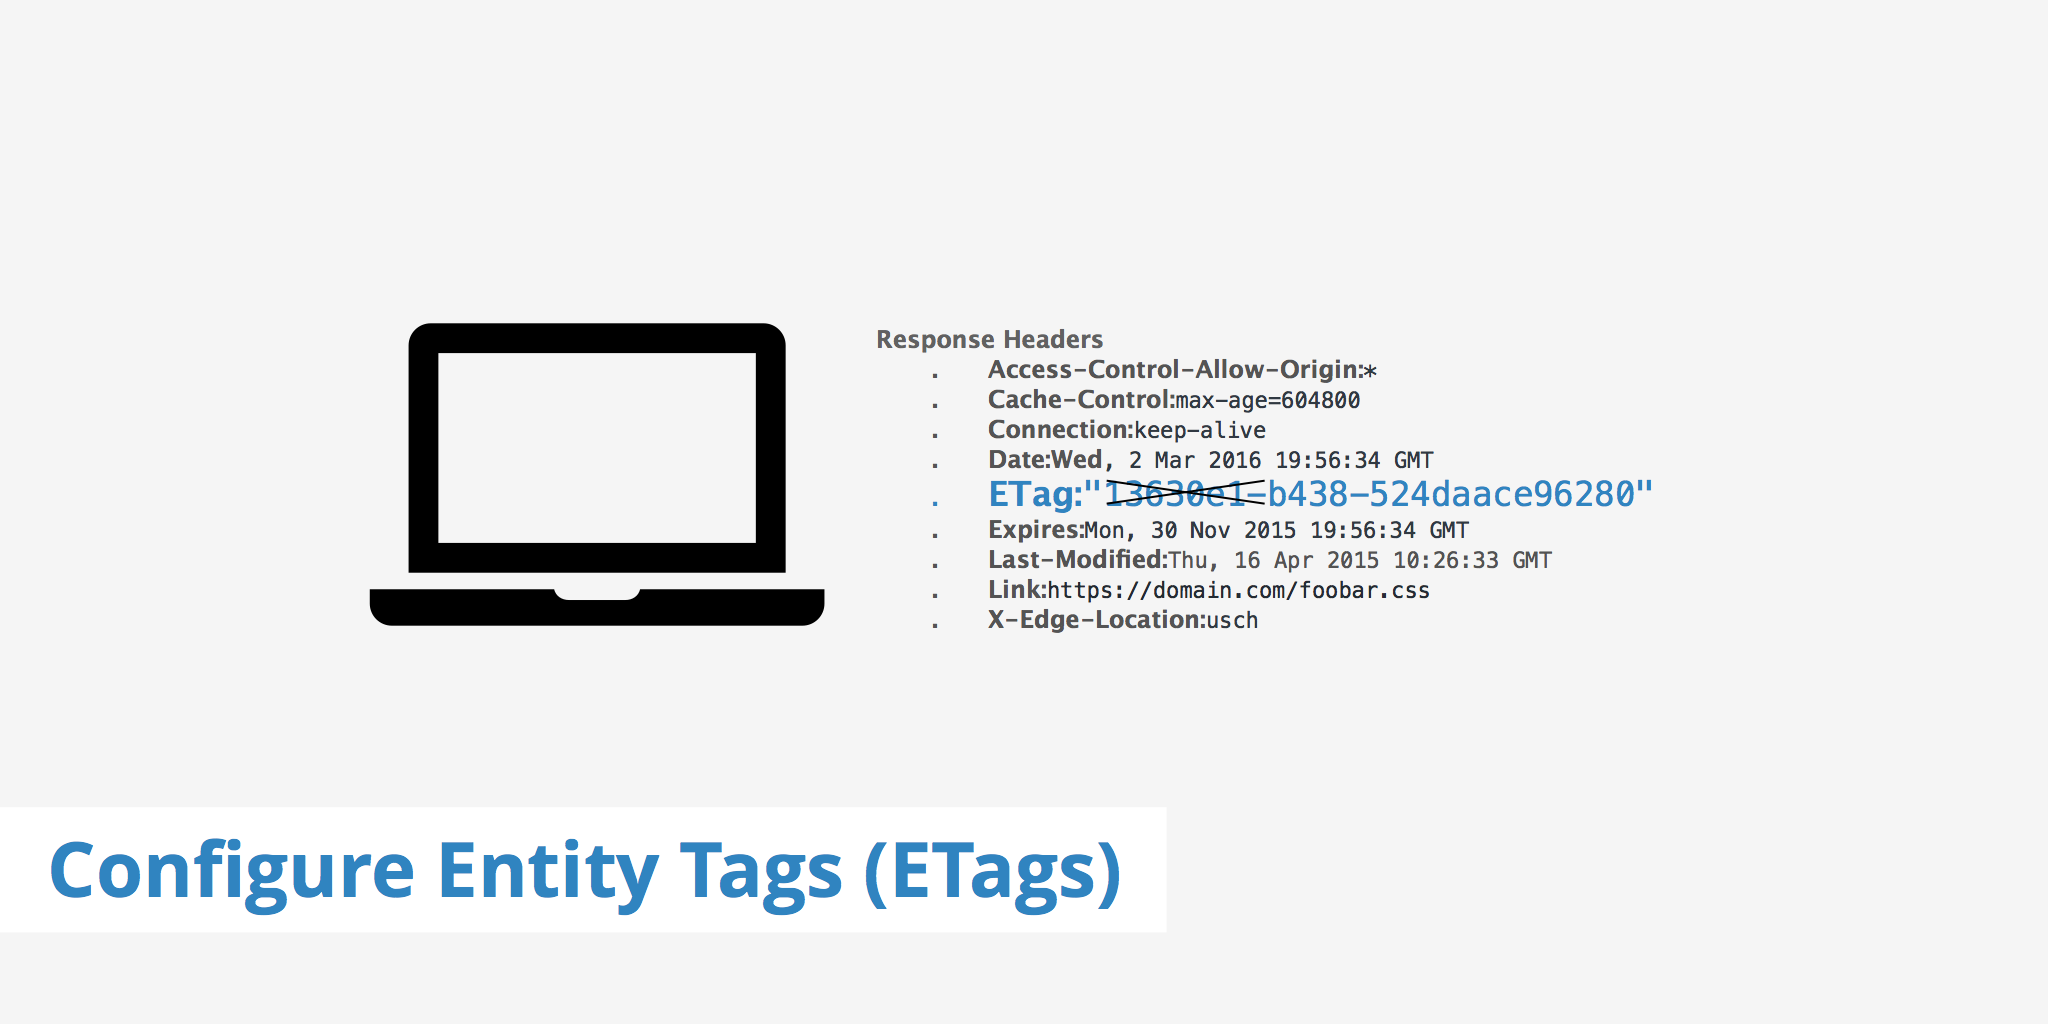 Configure Entity Tags (ETags)